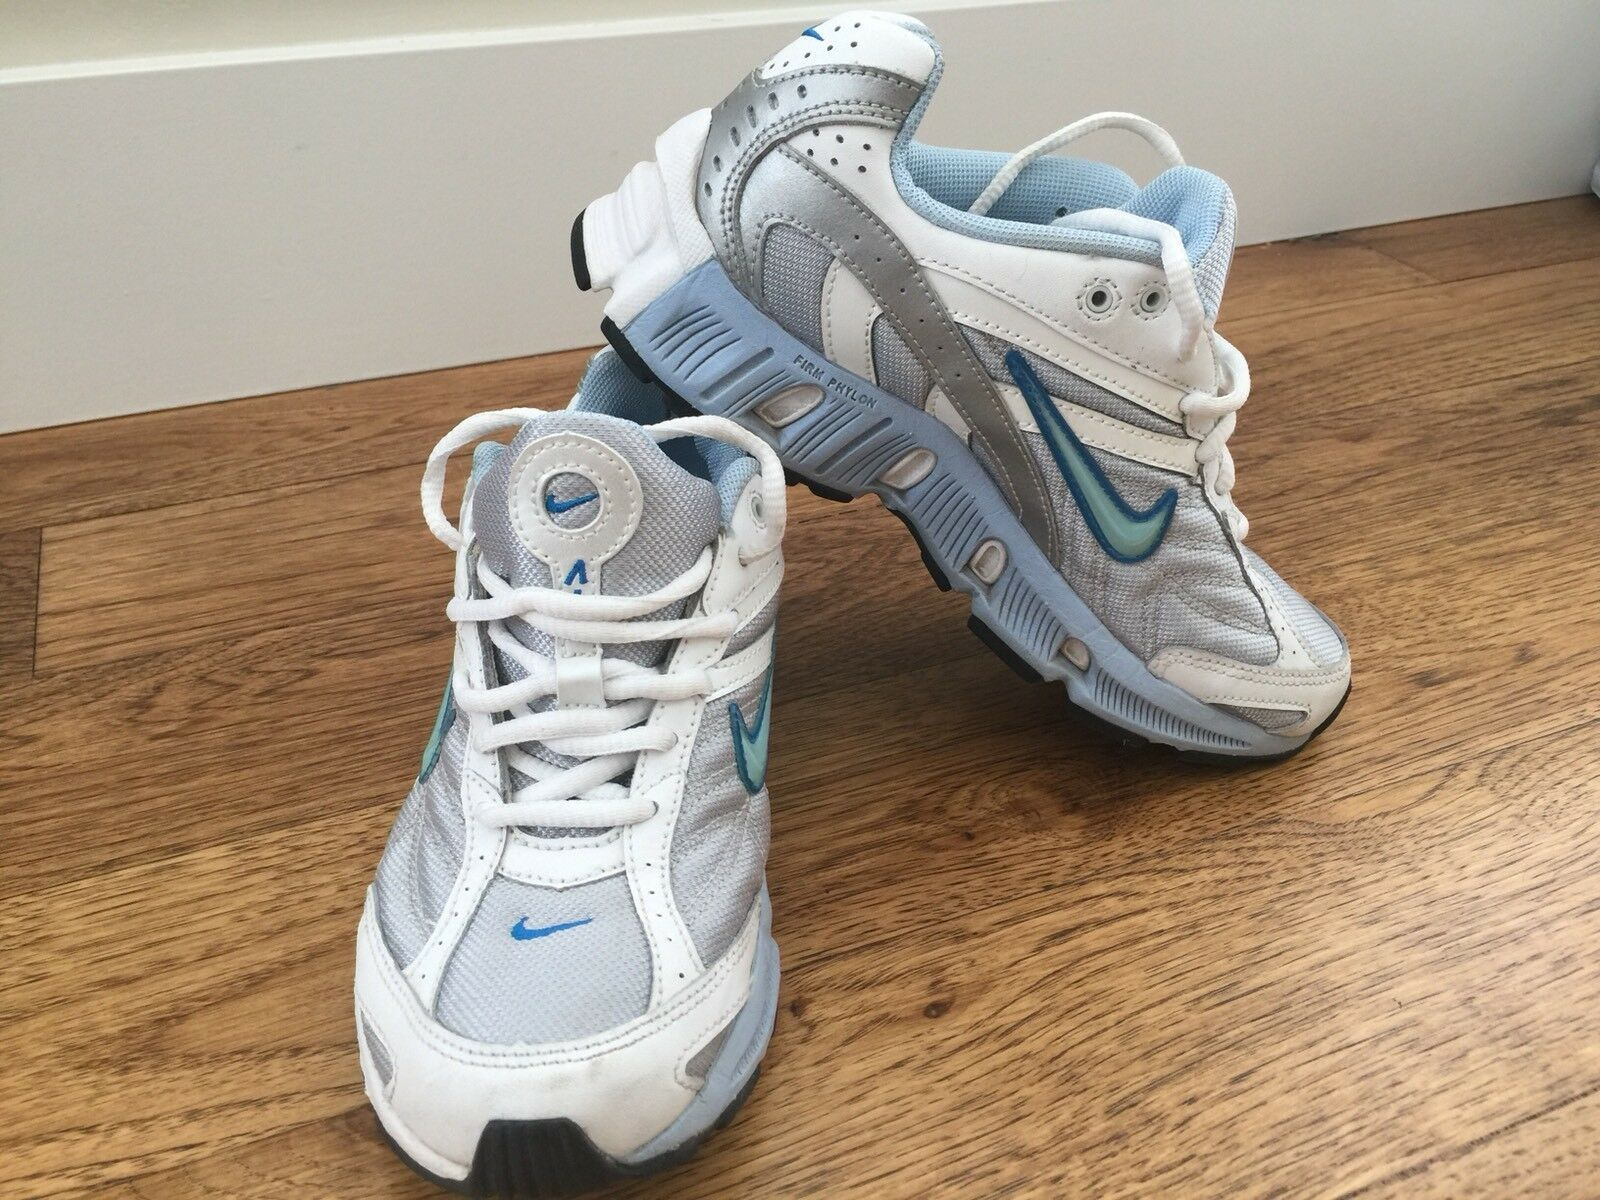 Nike Air Dual D Phylon Women's White Gray Blue Running Shoes Sz 7 Price reduction The most popular shoes for men and women